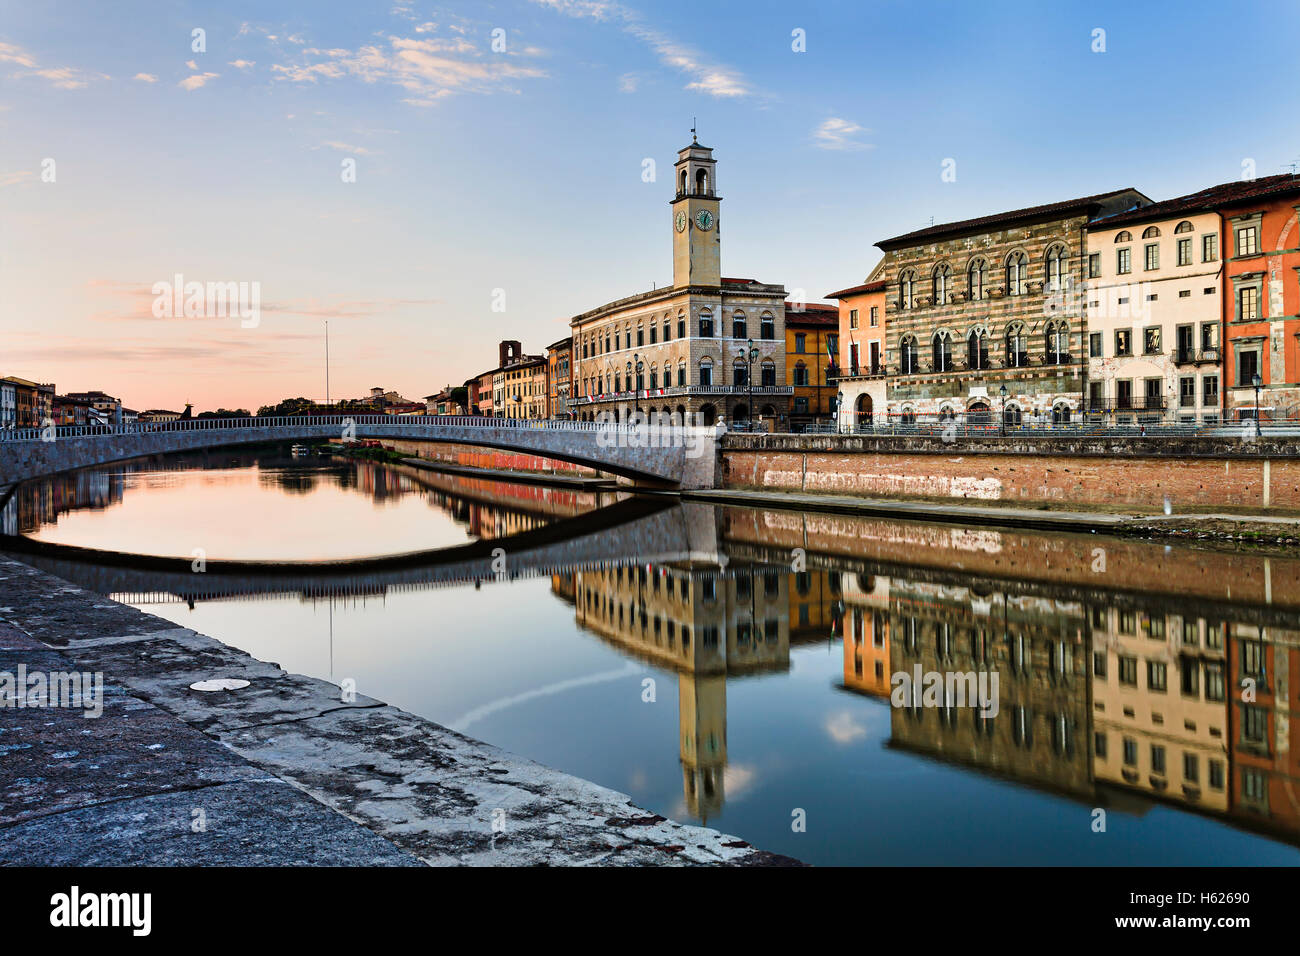 Colourful residential houses along Arno river in the downtown of Pisa - famous historic Italian city. Still waters Stock Photo